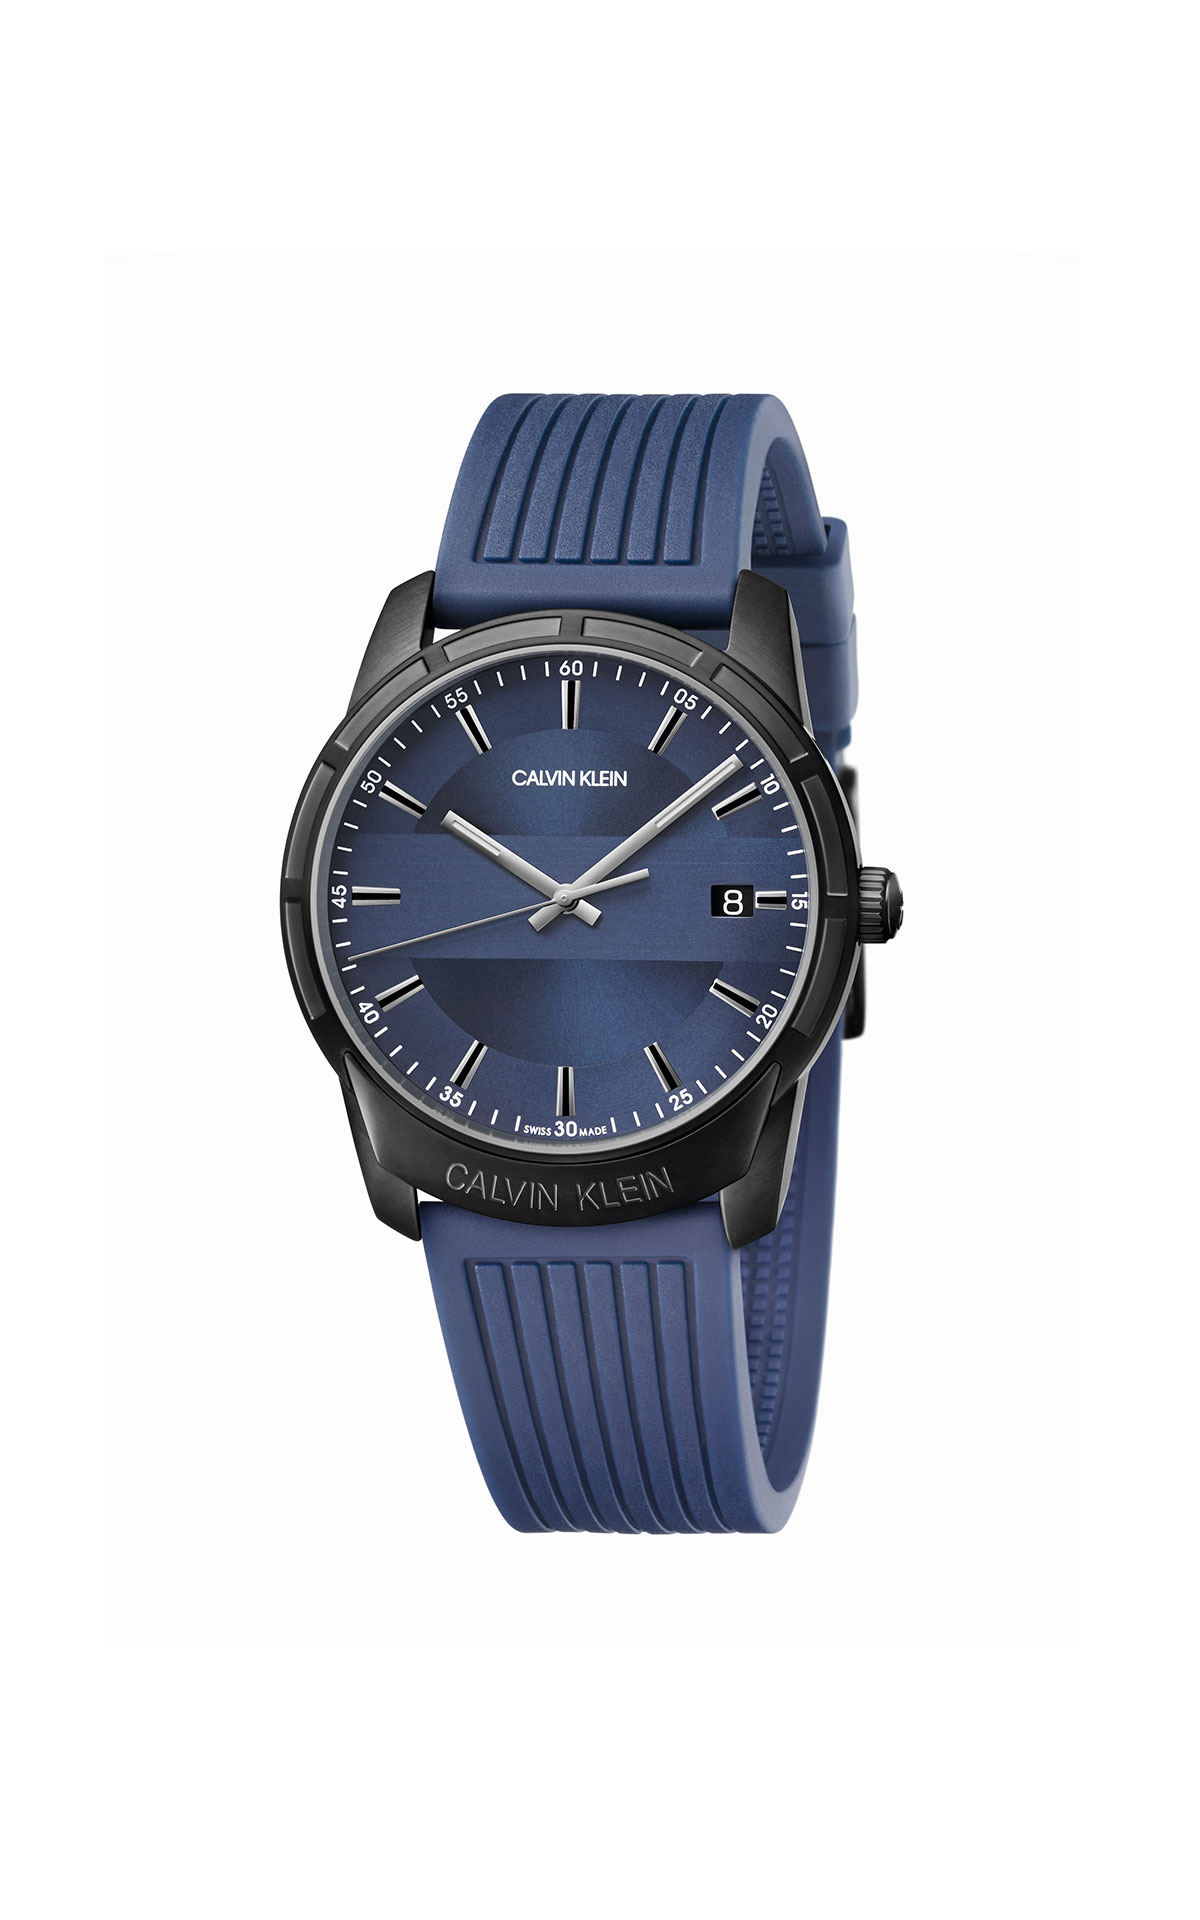 Hour Passion Calivin Klein watch from Bicester Village